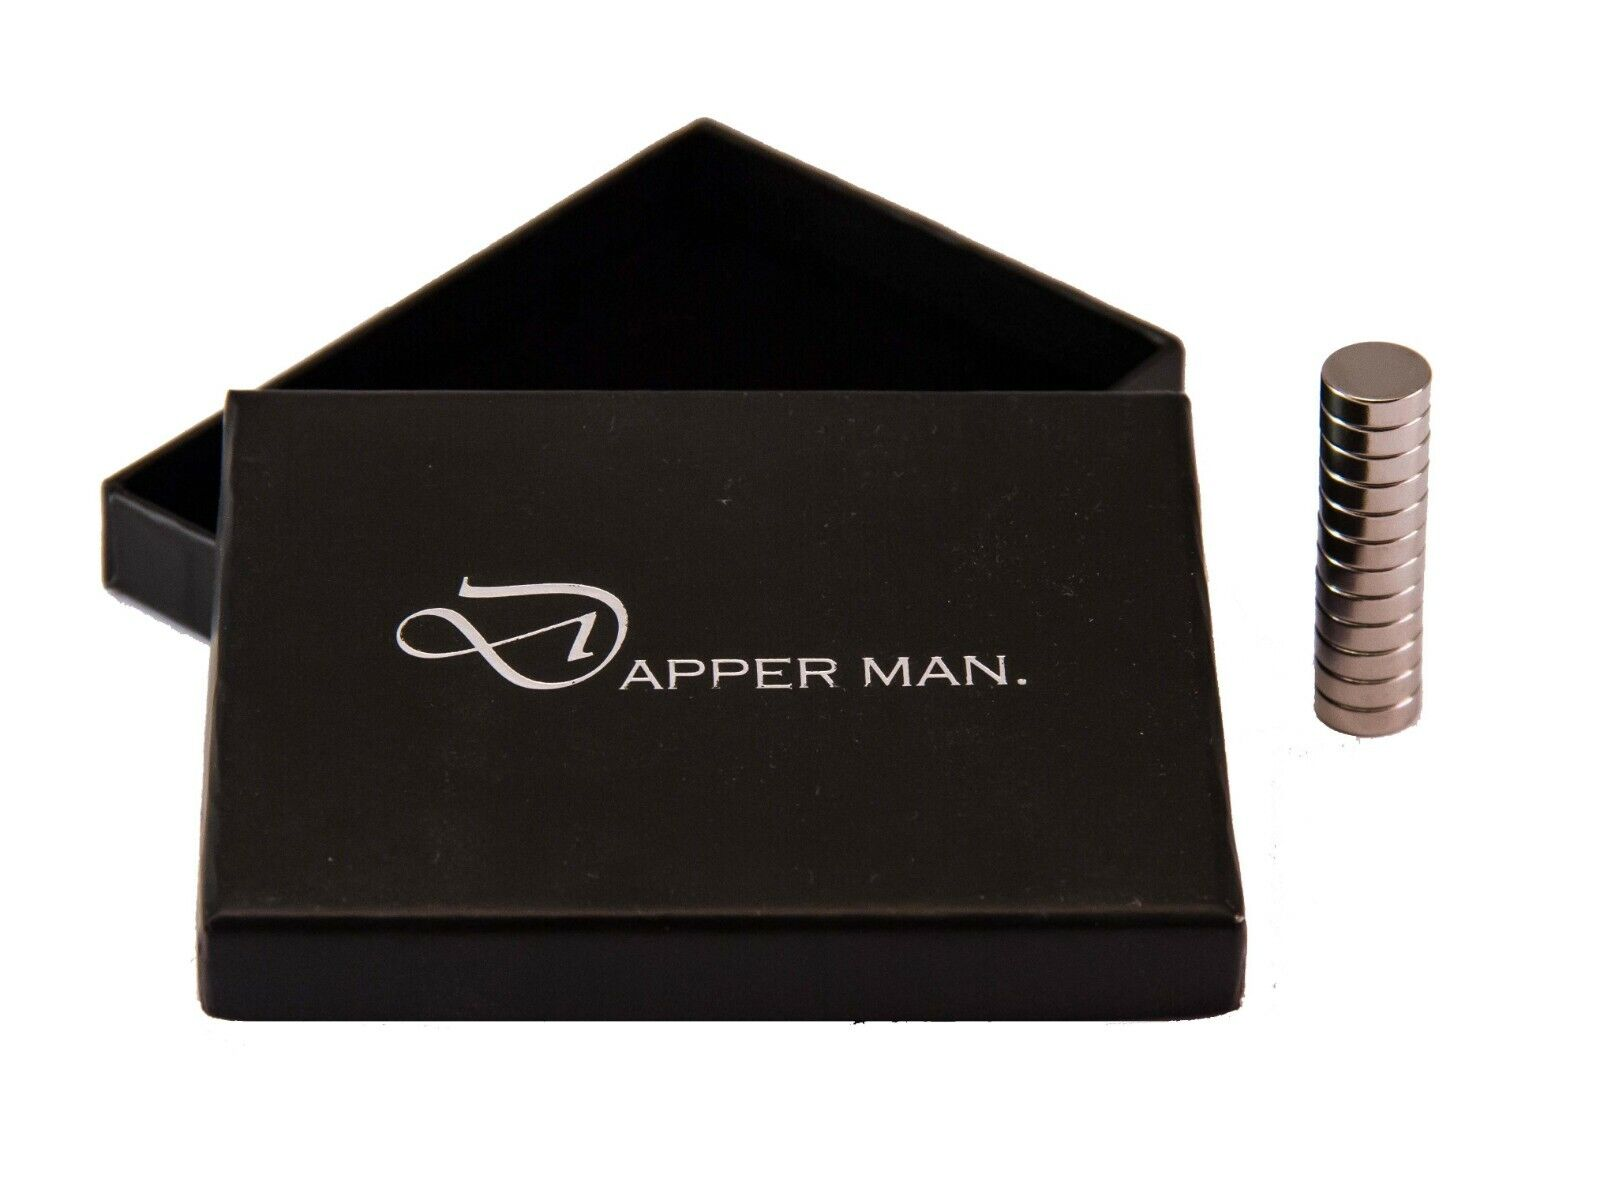 Magnetic Collar Stays - Replacement Magnets by Dapper Man